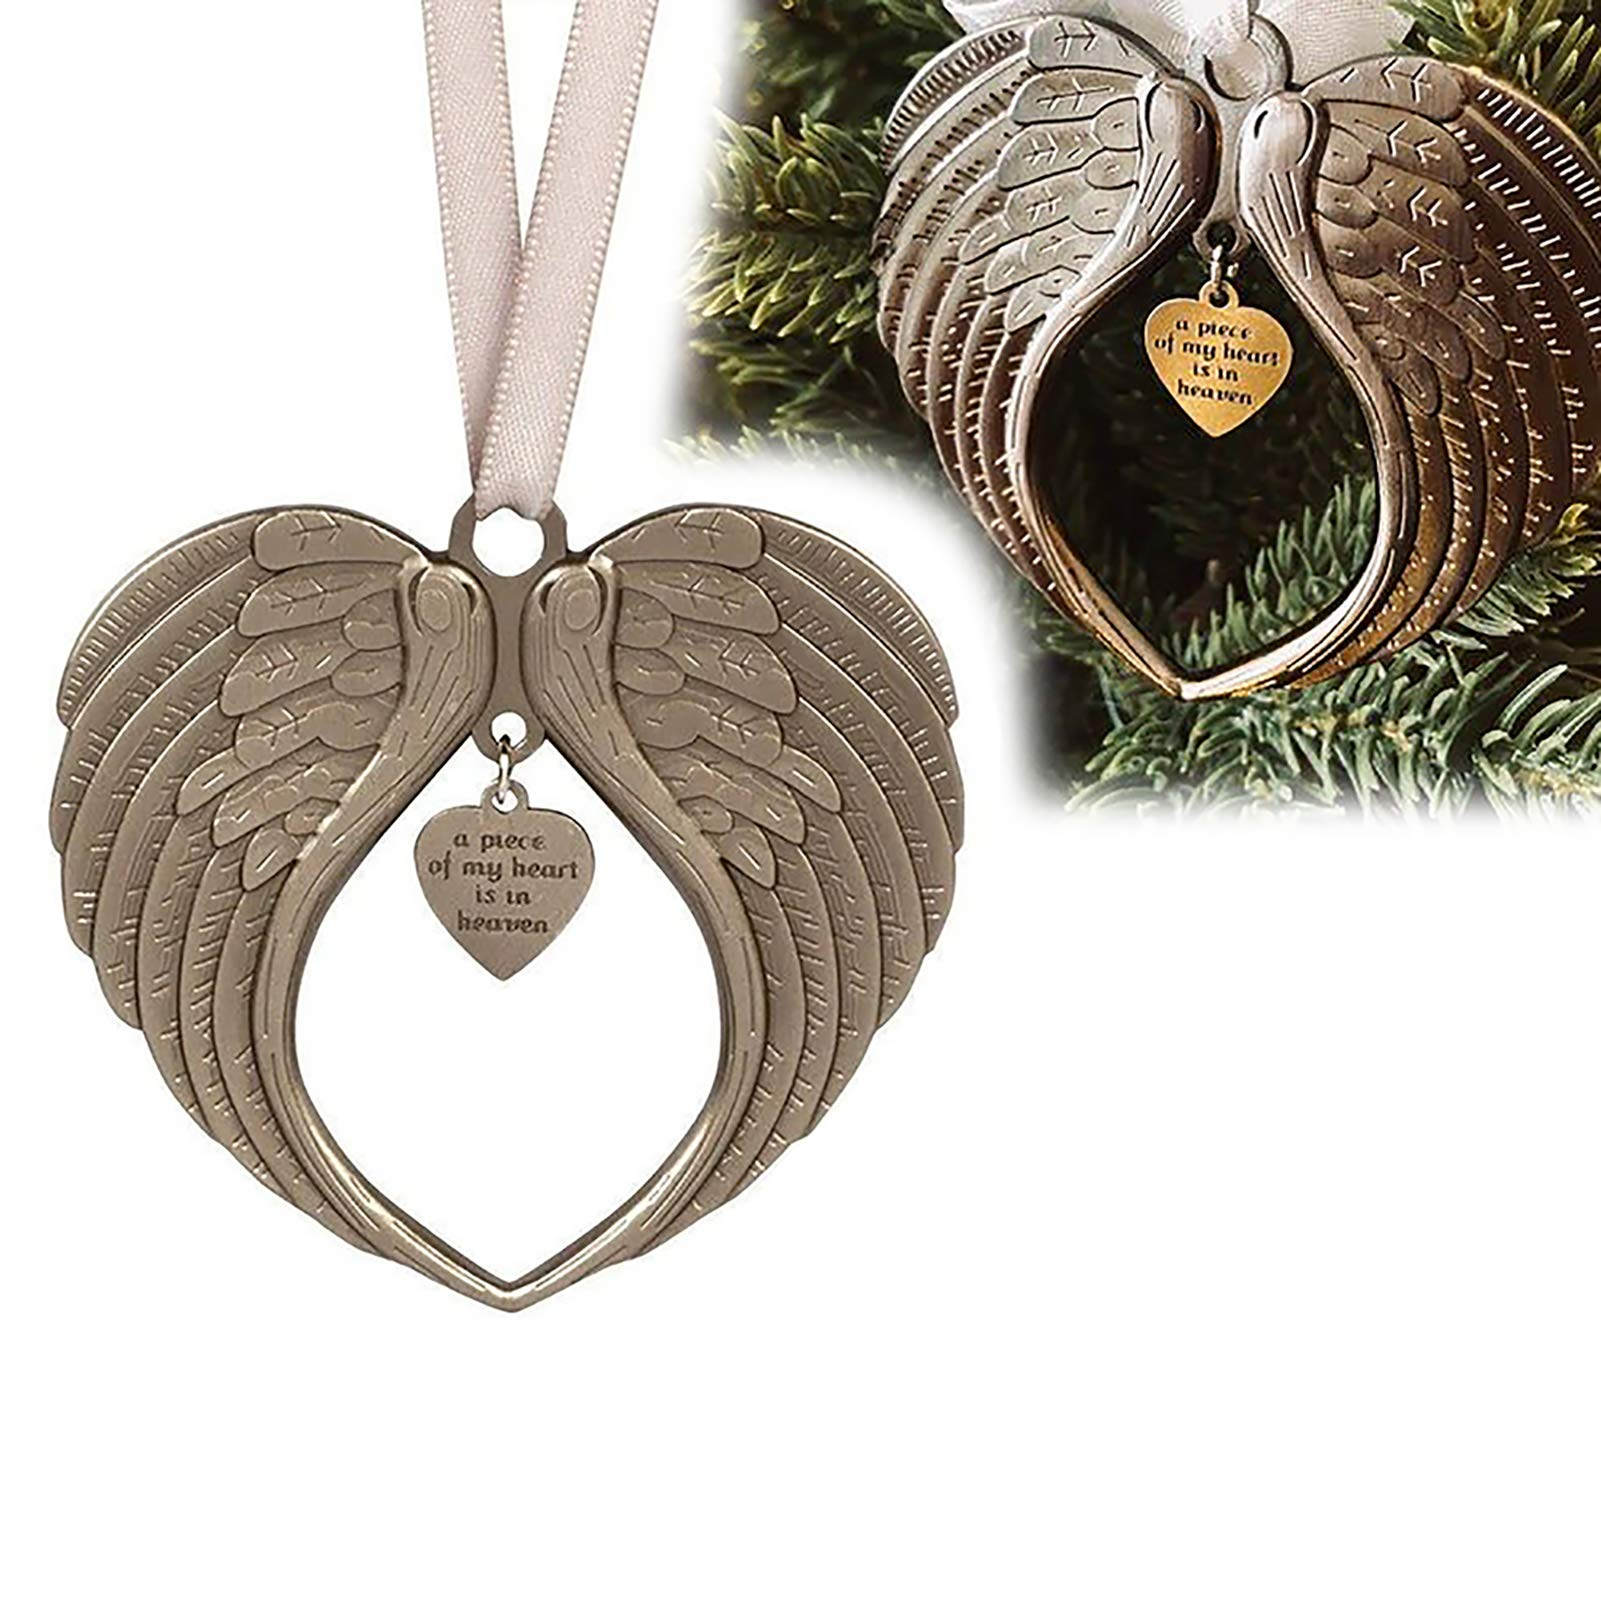 Angel Wings Christmas Ornaments for Christmas Tree, A Piece of My Heart Lives in Heaven Memorial Ornament for Loss of Loved One,Bereavement Gifts